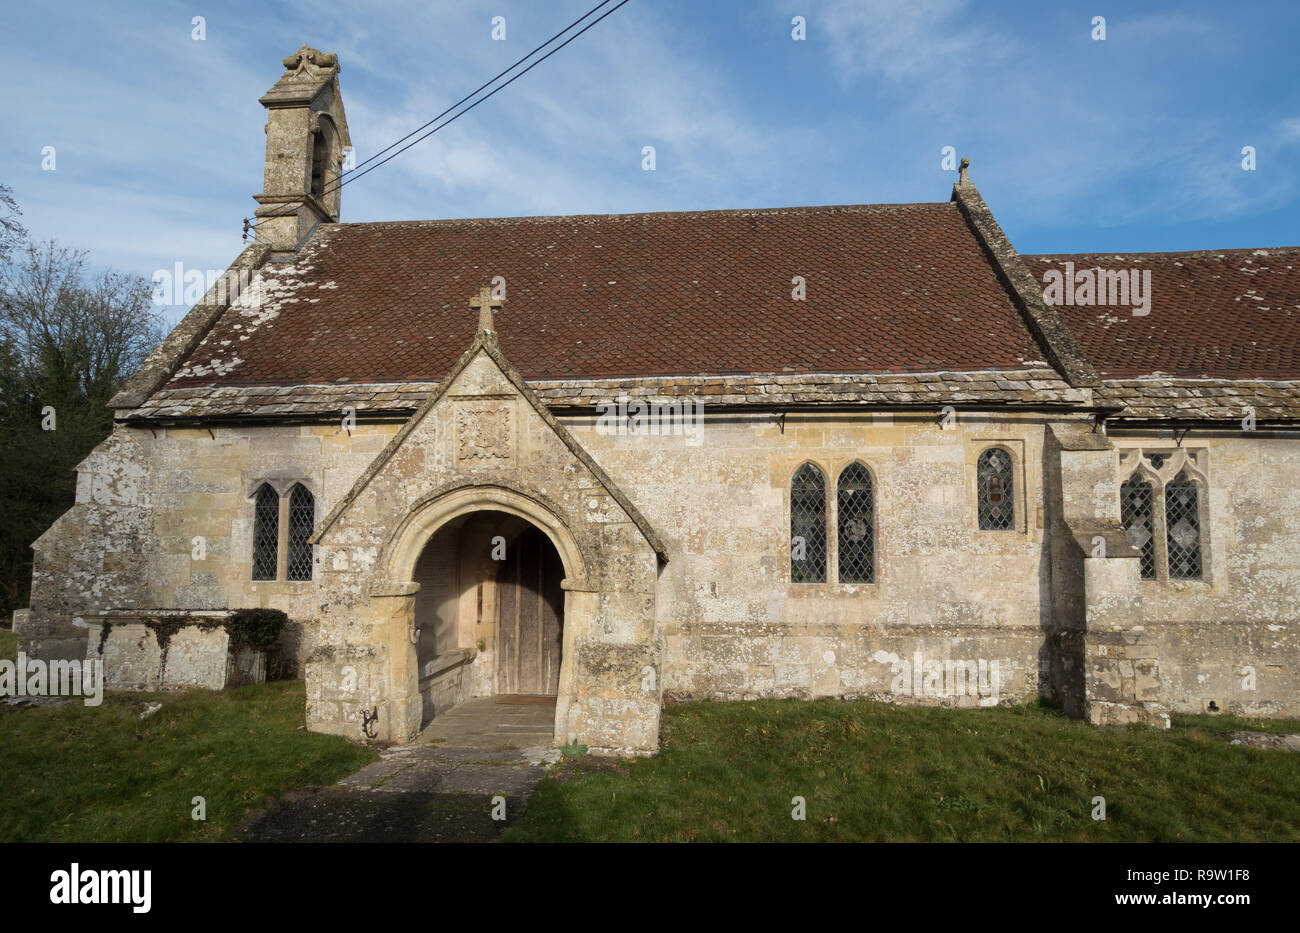 The church of St Cosmas and St Damian, Sherrington, Wiltshire - Stock Image